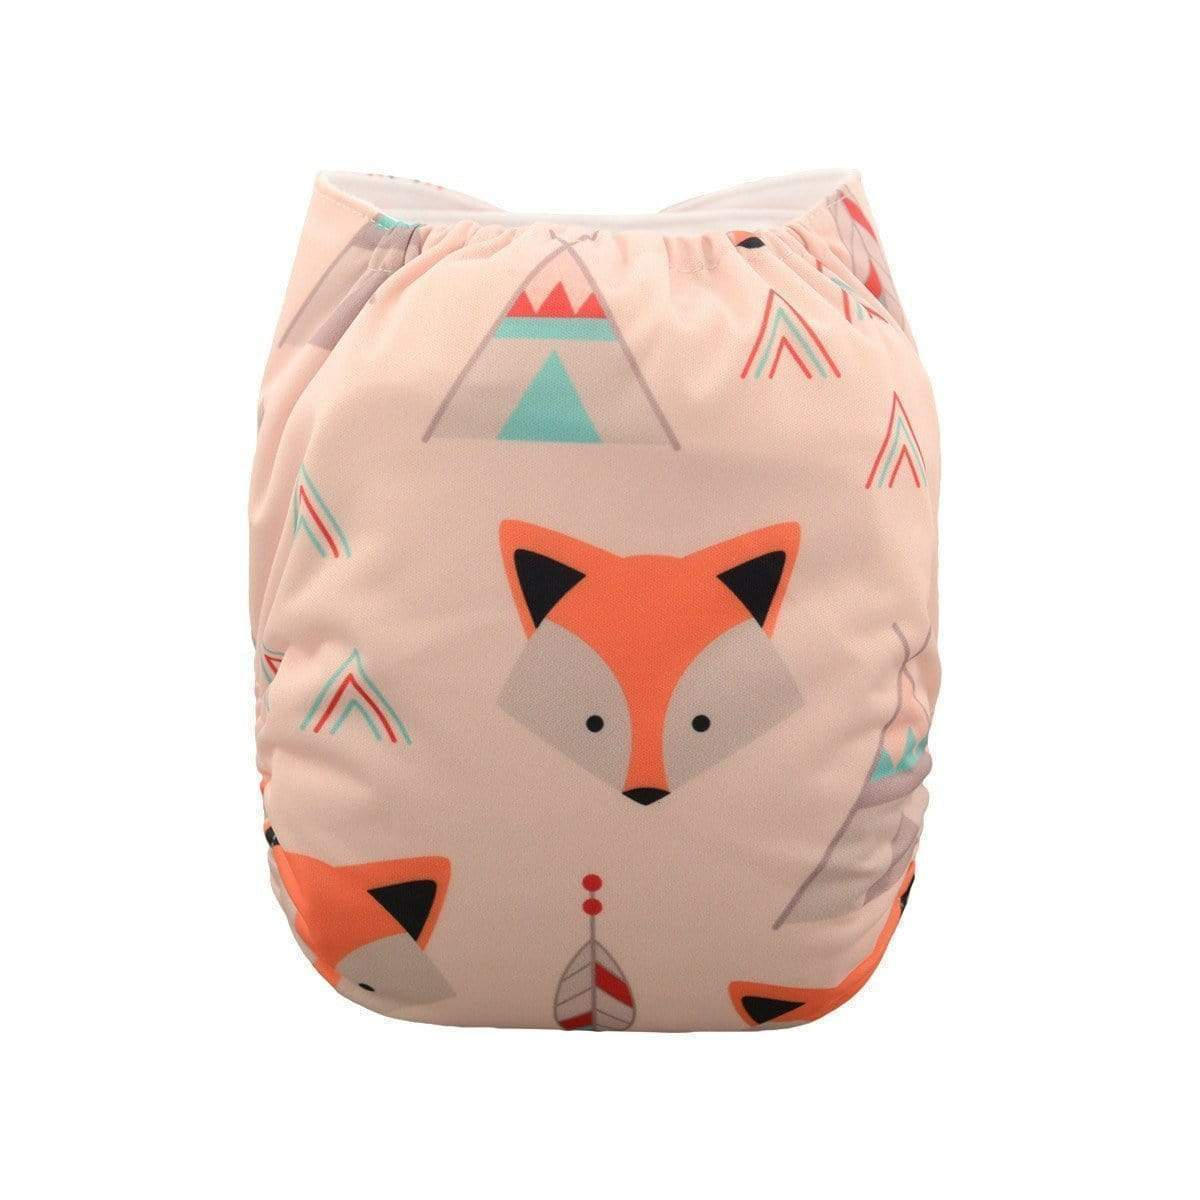 Express the Best Reusable Modern Cloth Nappy - Pink Foxy - Naked Baby Eco Boutique